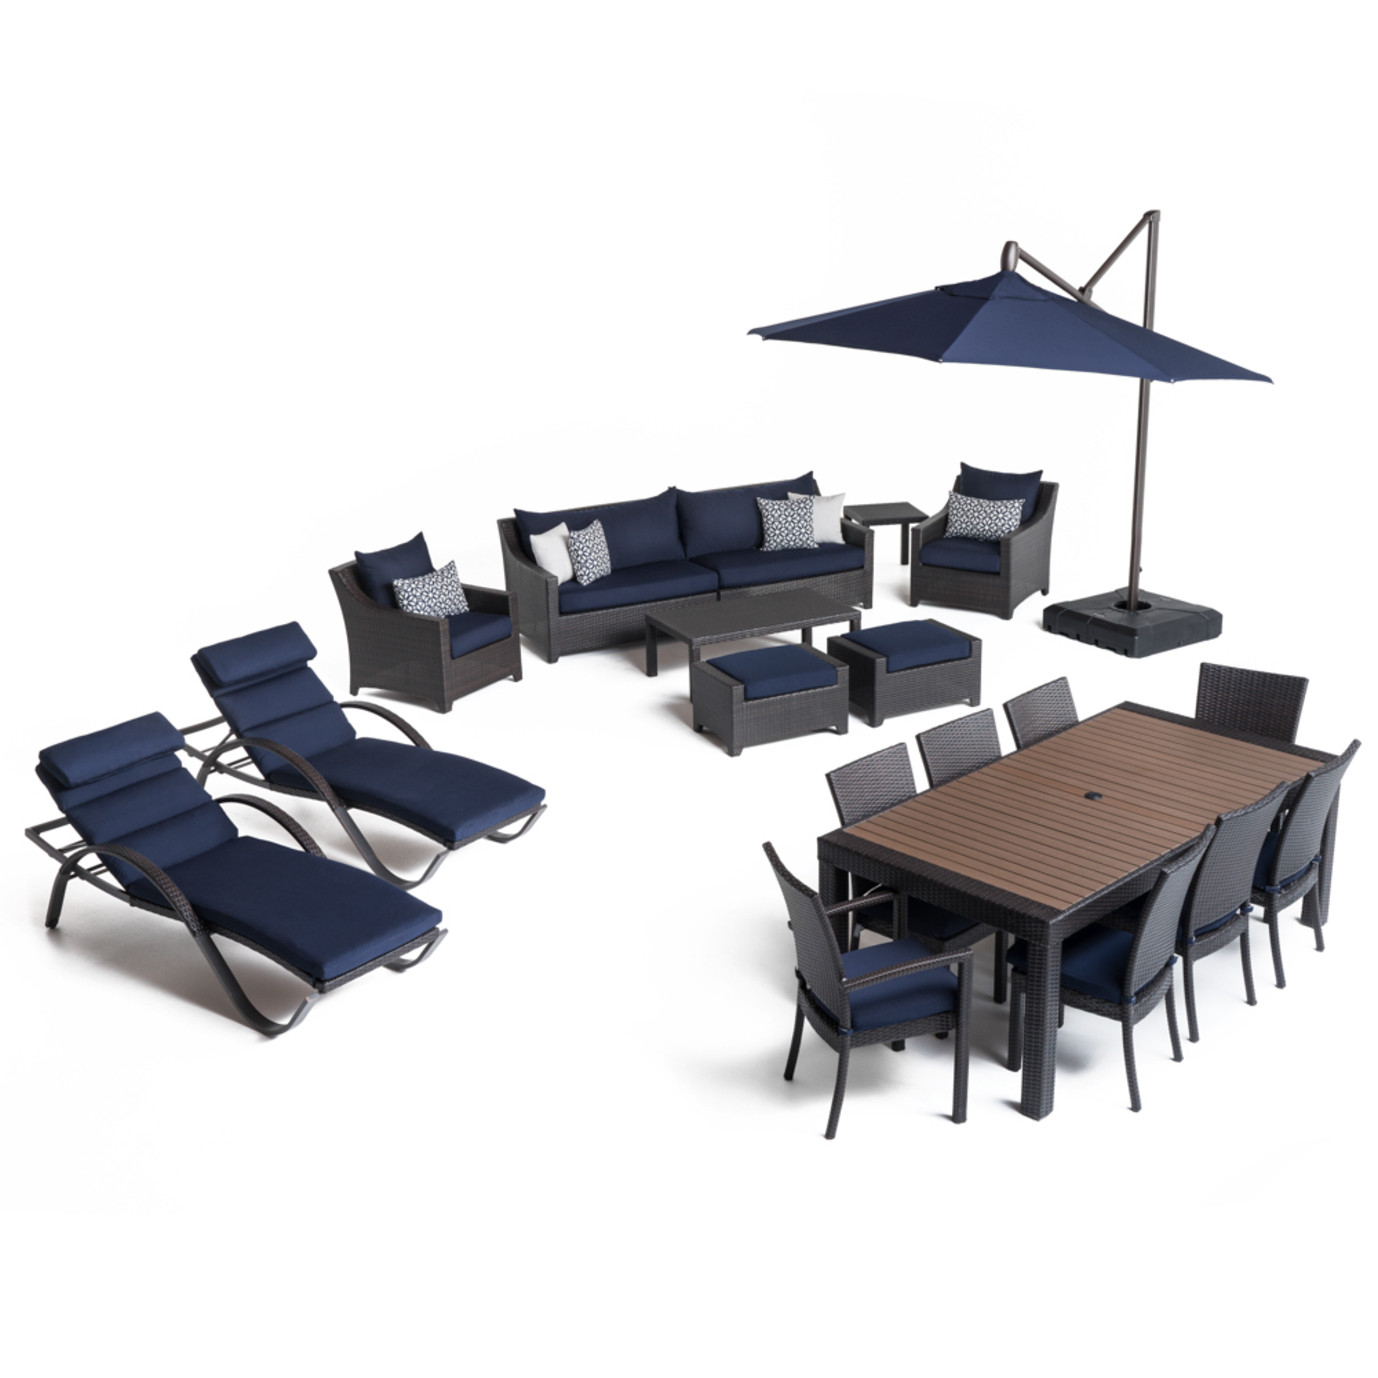 Deco™ 20 Piece Outdoor Estate Set - Navy Blue